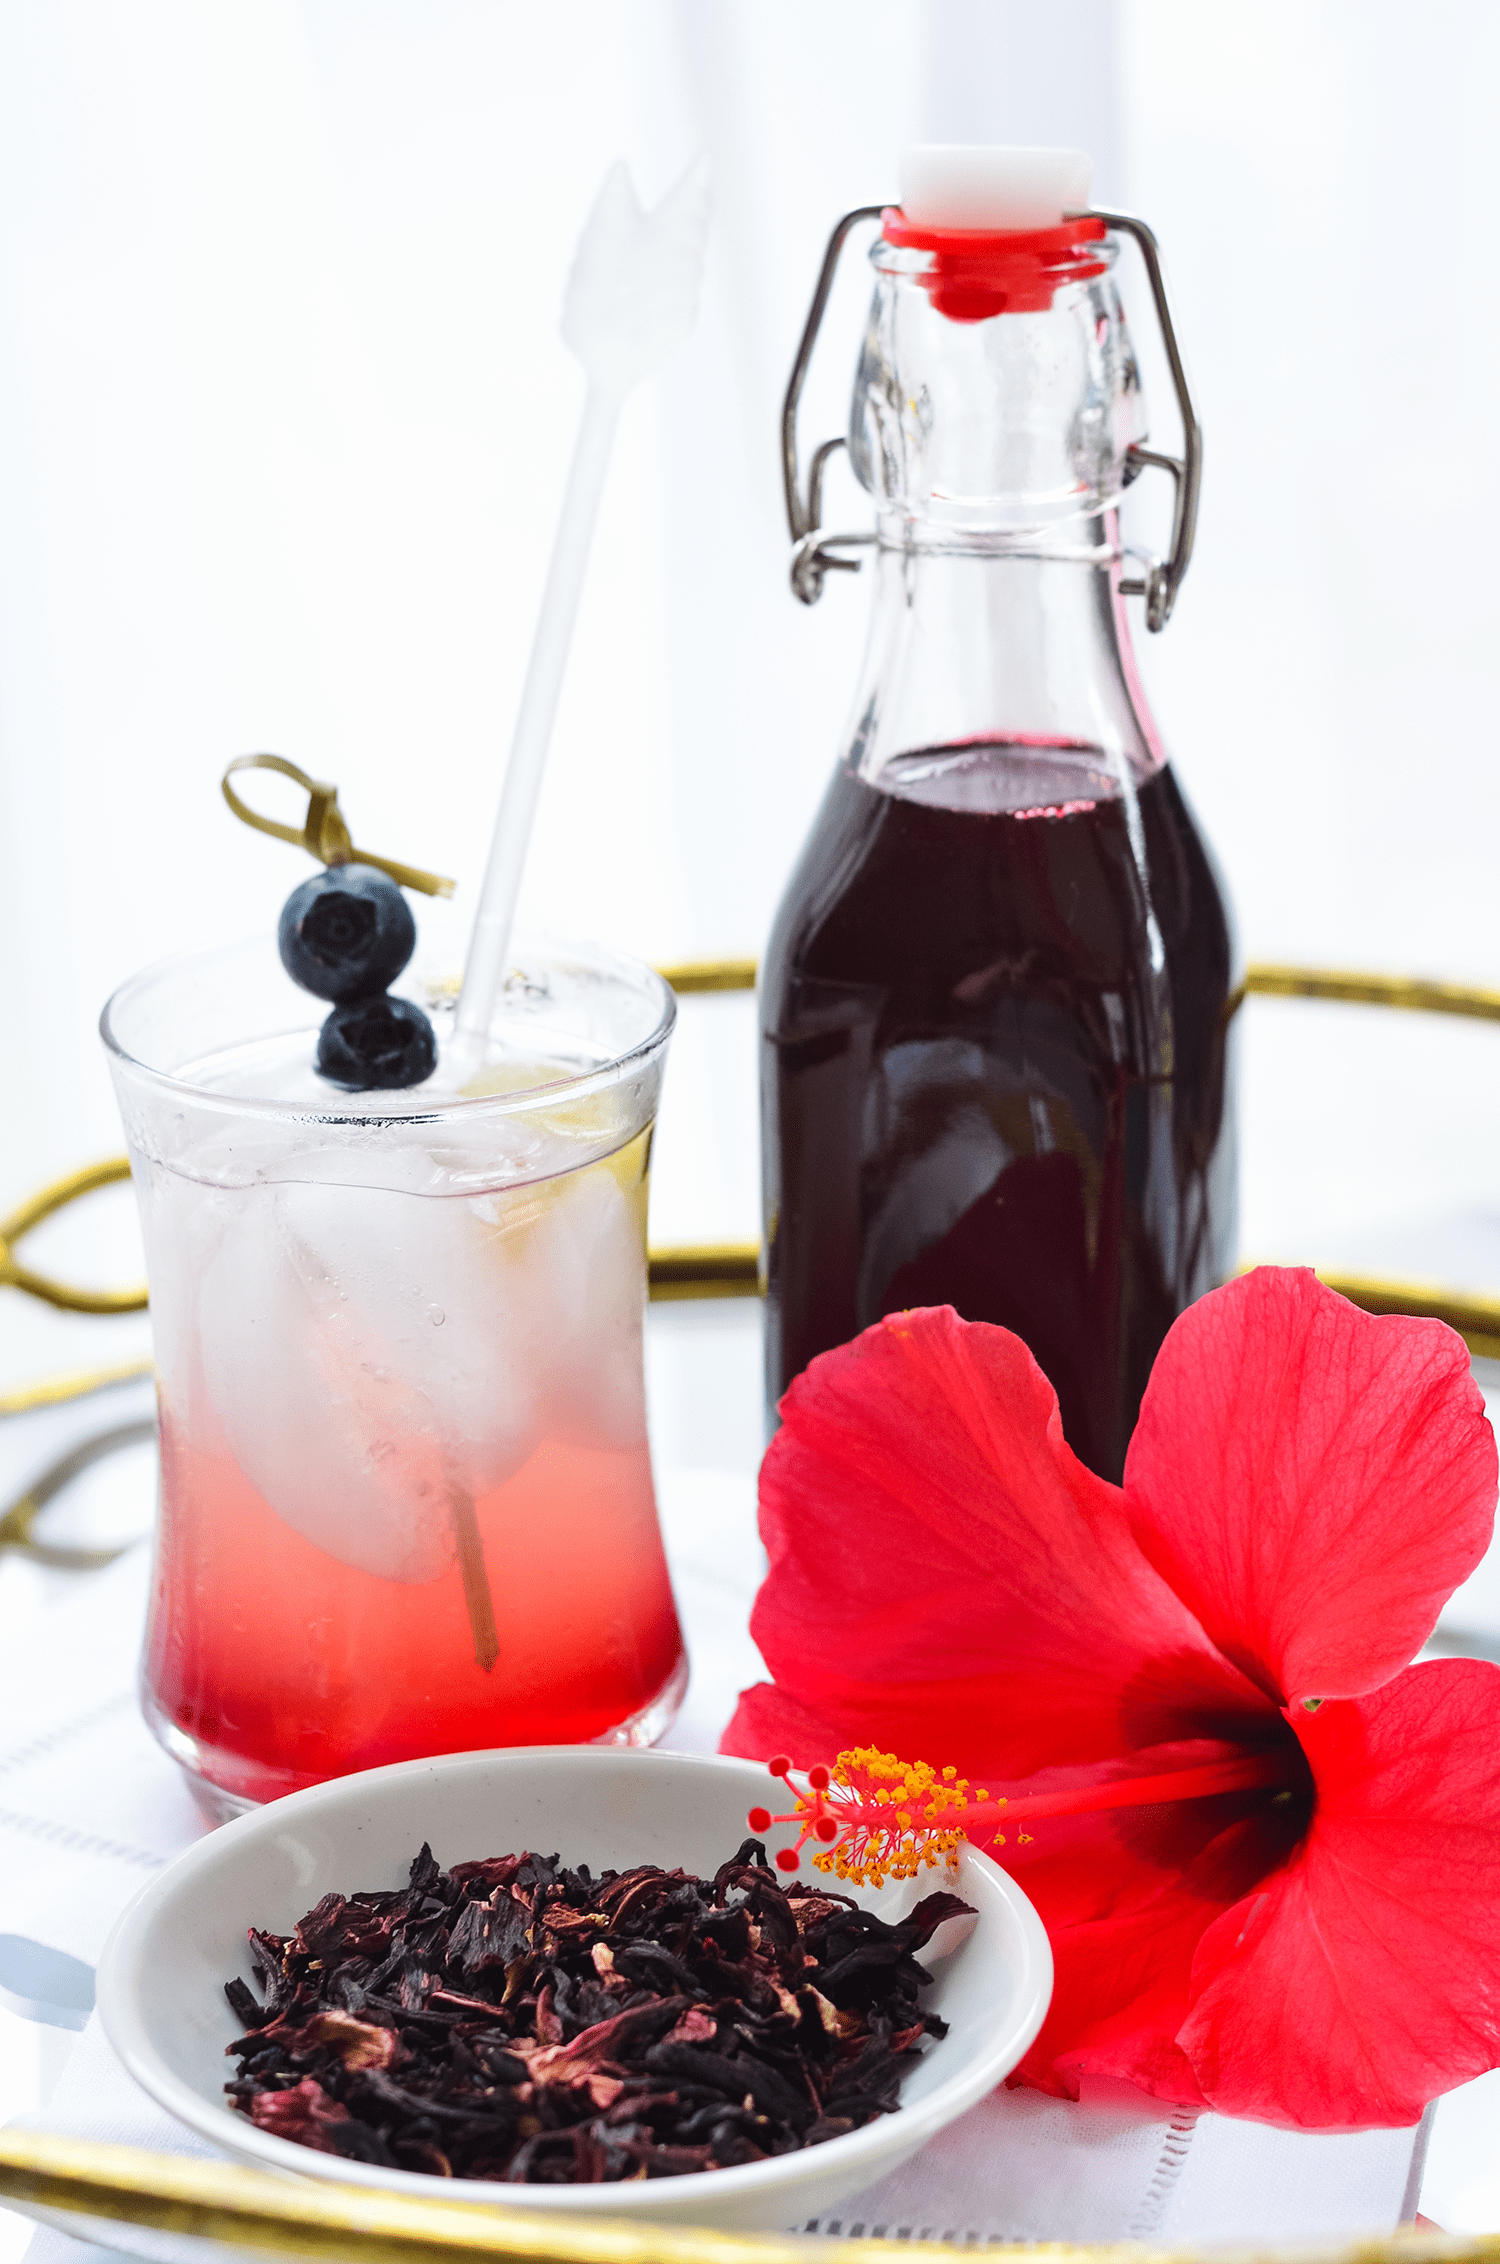 Make Your Own Lemon Hibiscus Simple Syrup